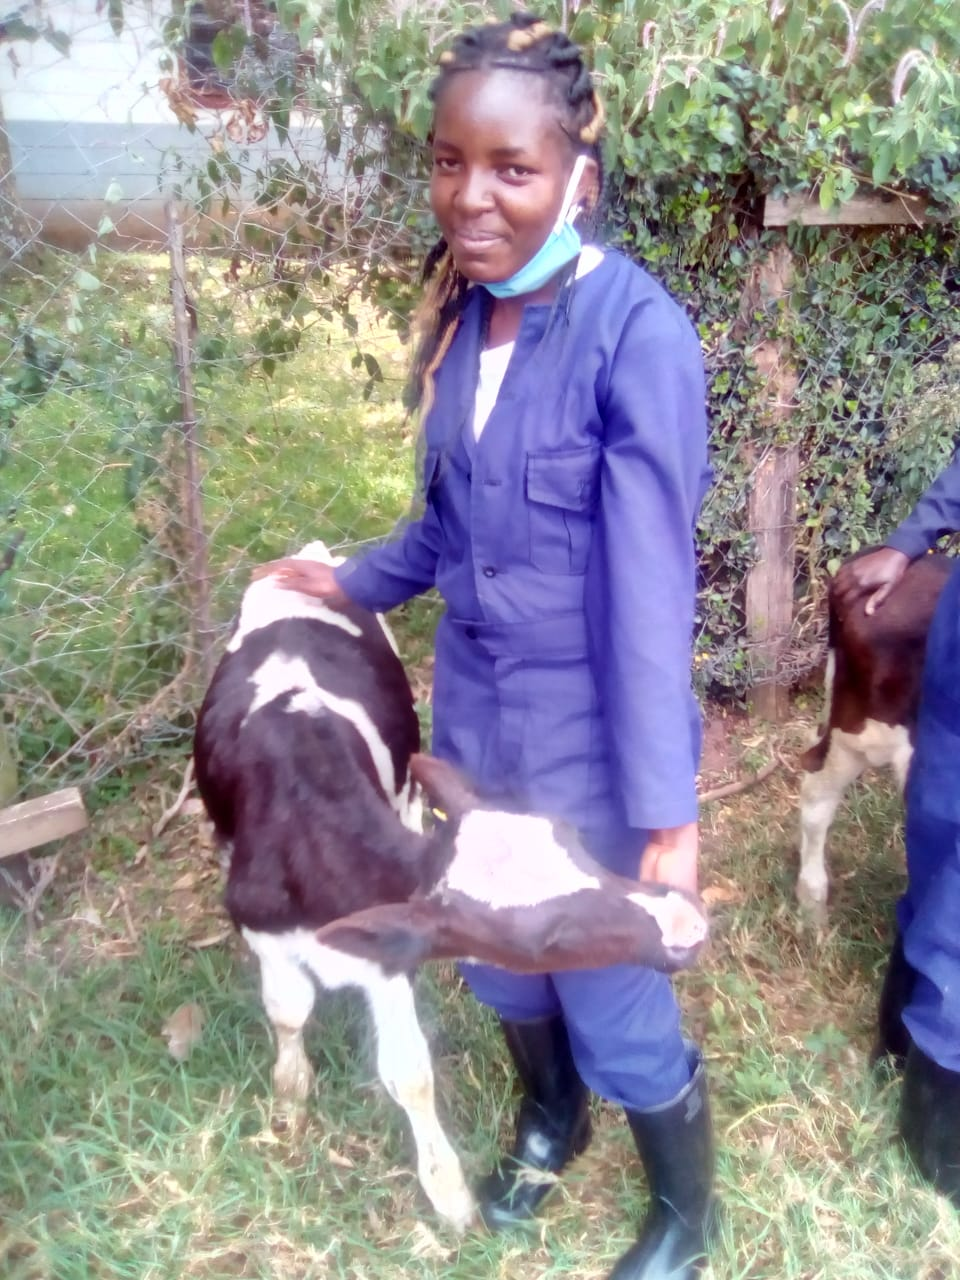 Restraining a cow using…